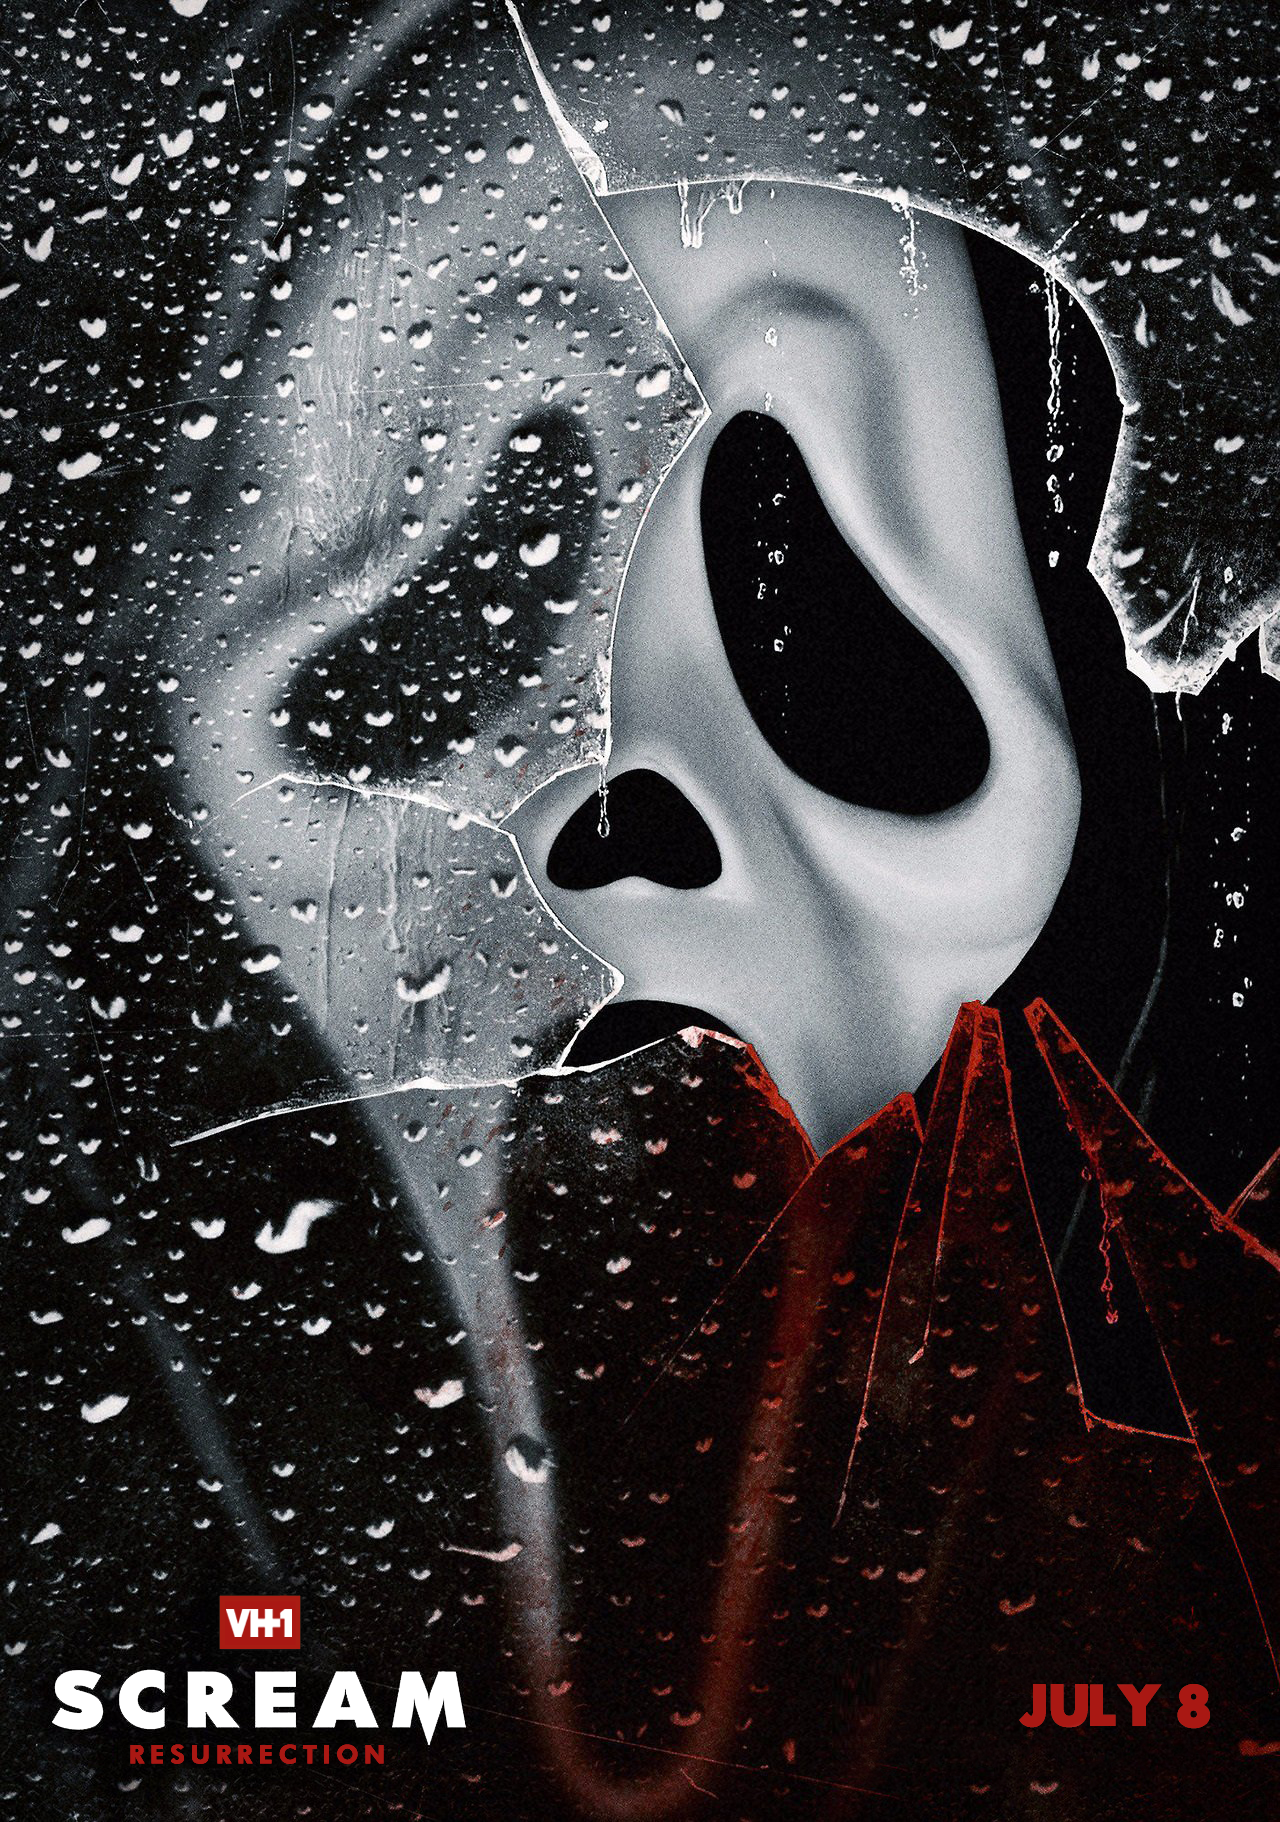 Scream: Resurrection